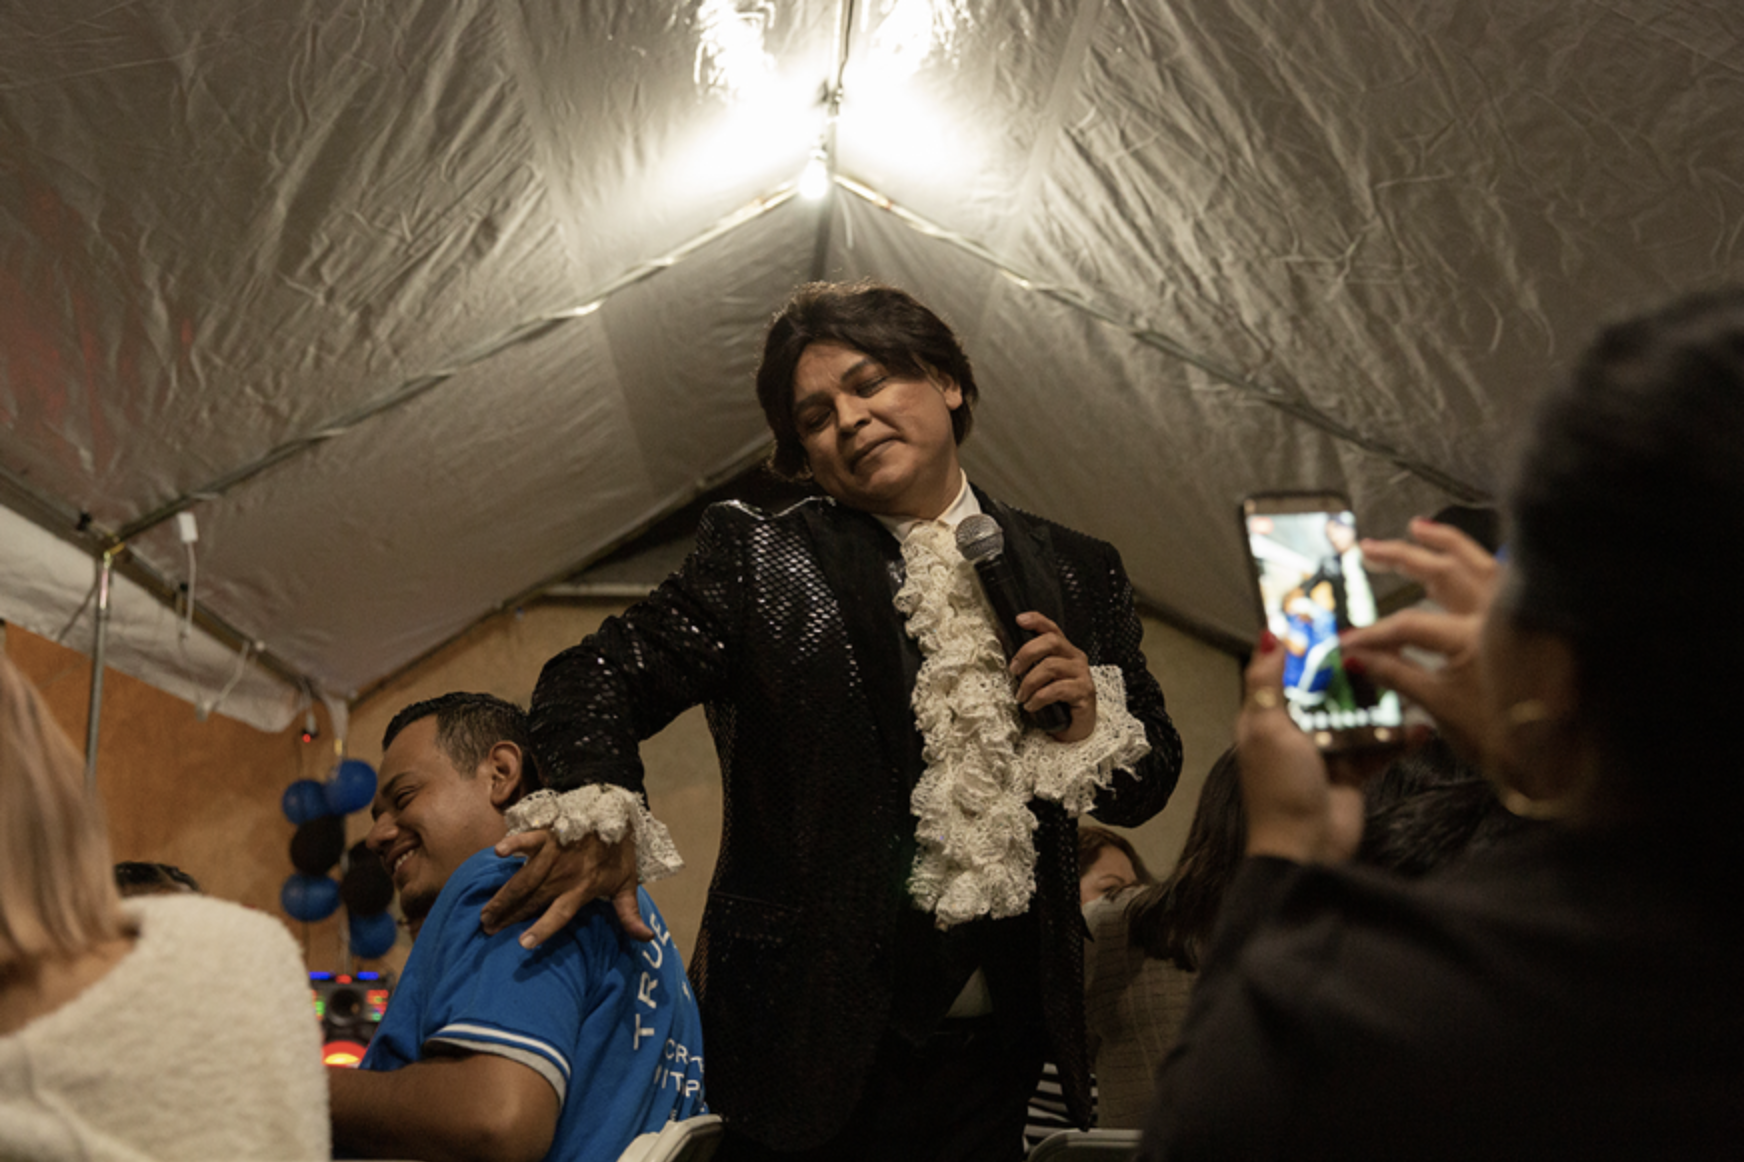 In Los Angeles, migrant communities often hire LGBTQI entertainers in the likeness of famous Latinx artists for backyard parties, weddings, and festivals.